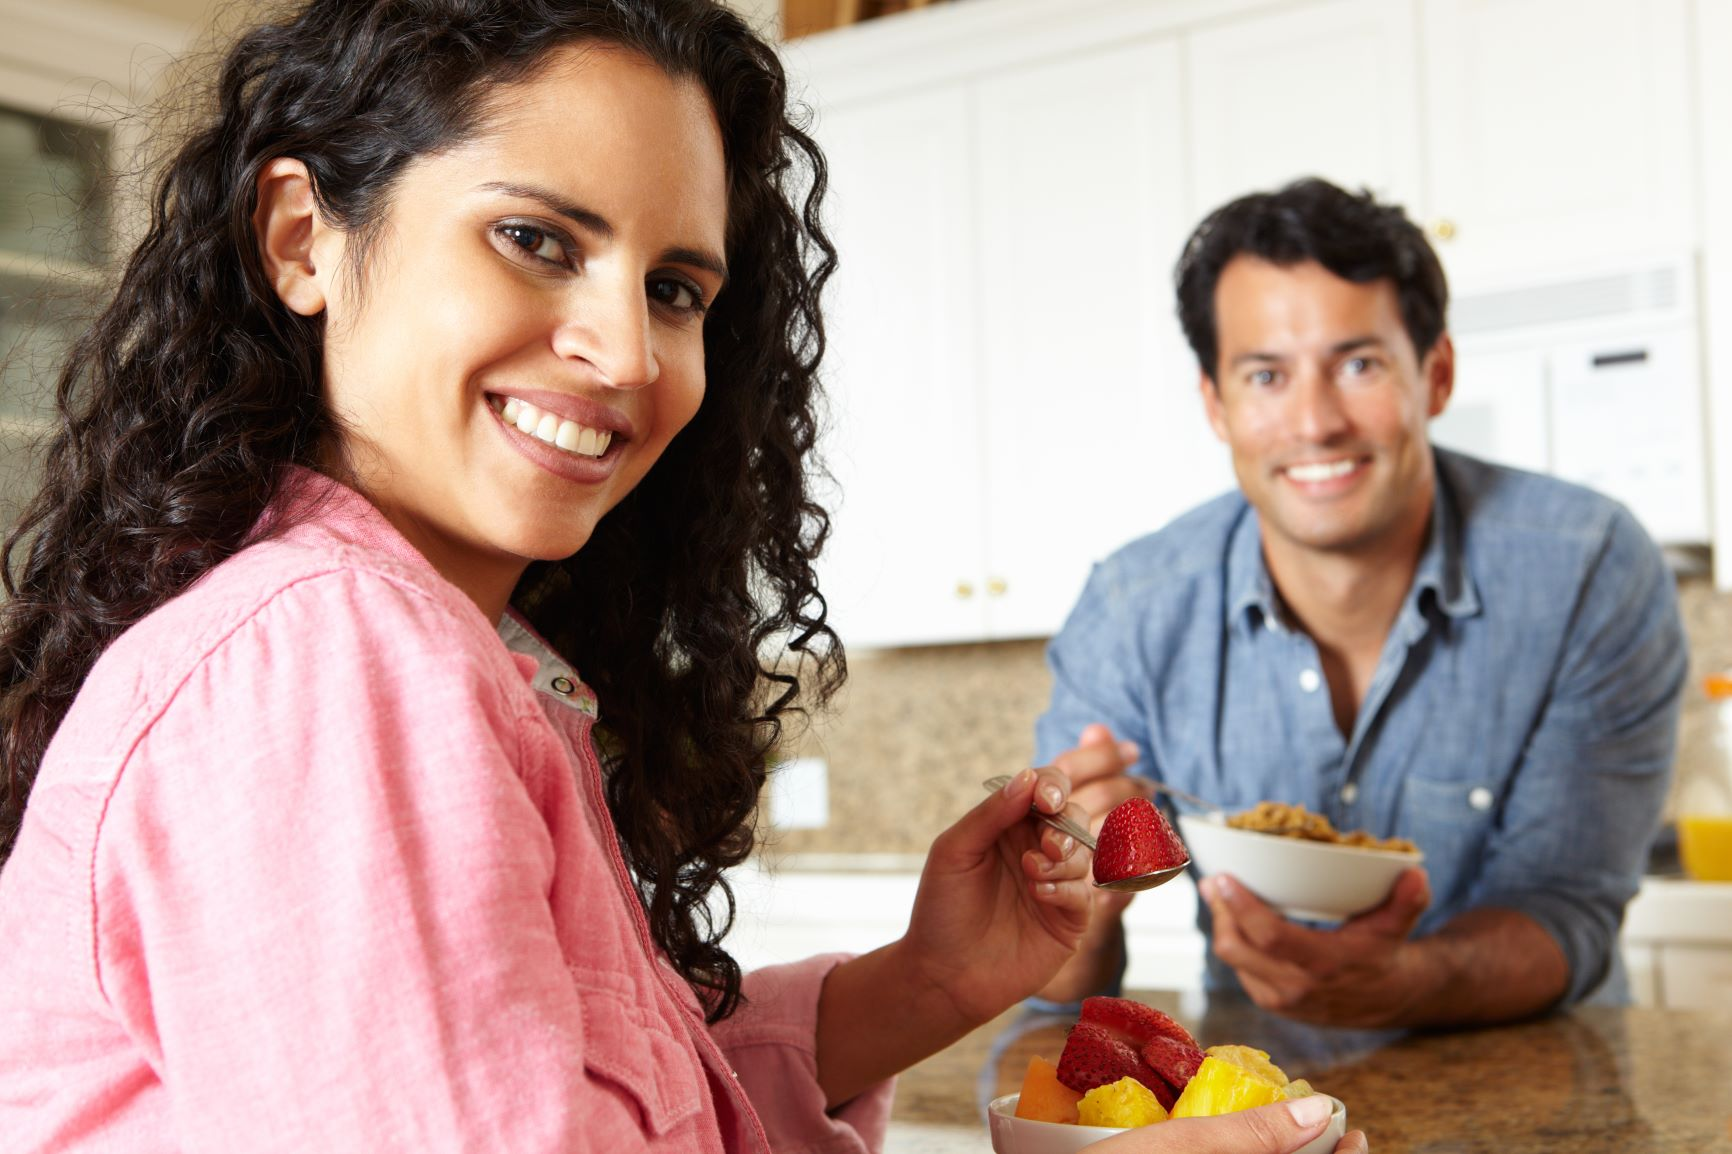 Woman eating small bowl of fruit and man eating small bowl of cereal.